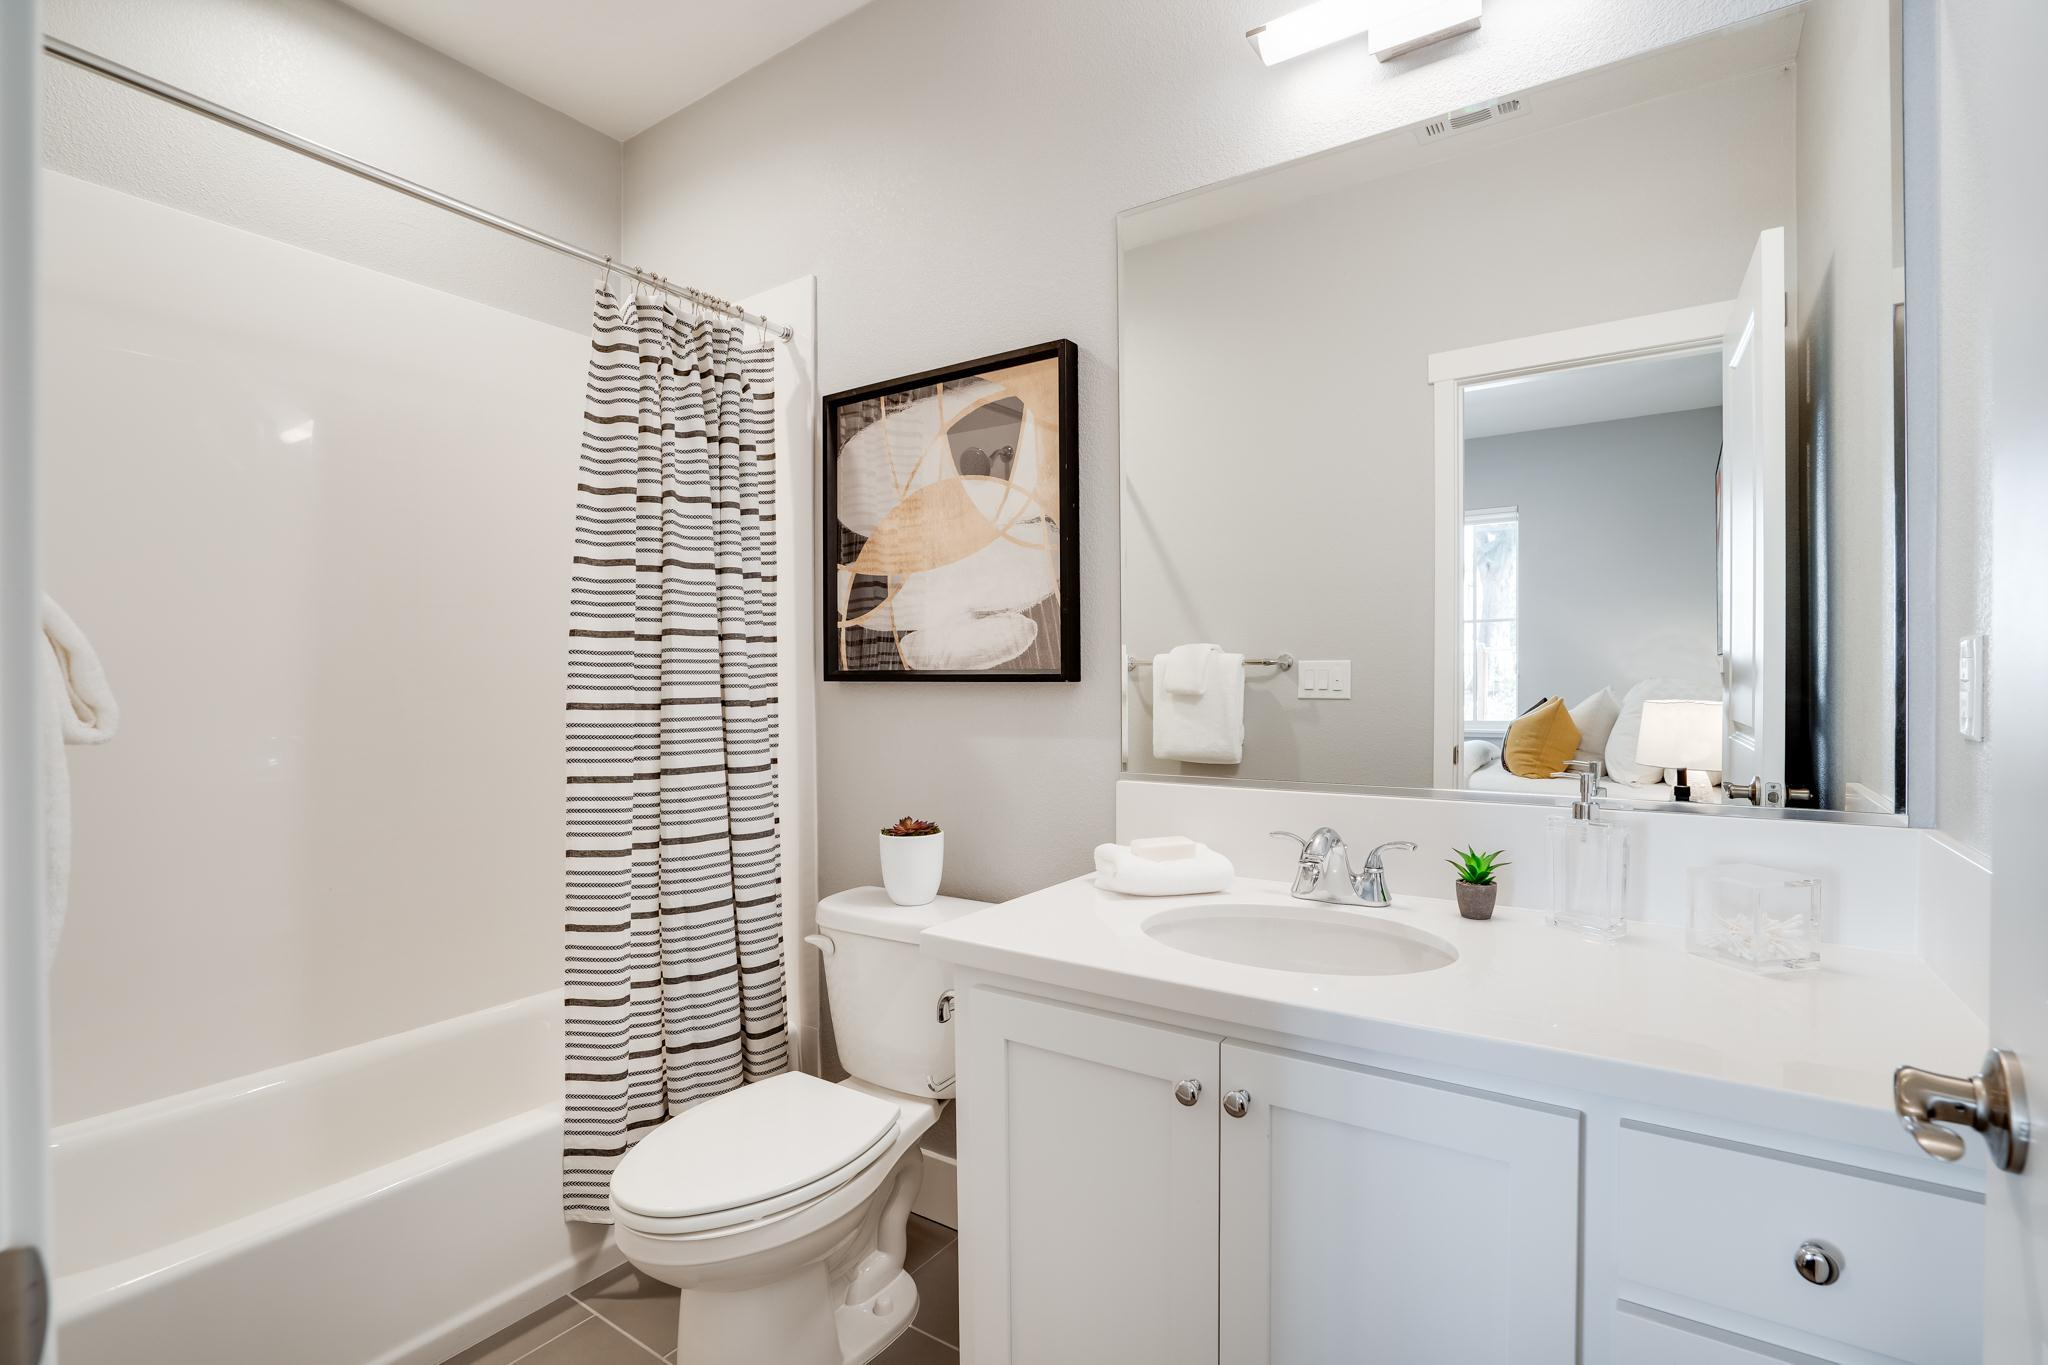 Bathroom featured in the Plan 3 ALT By Classic Communities in San Jose, CA